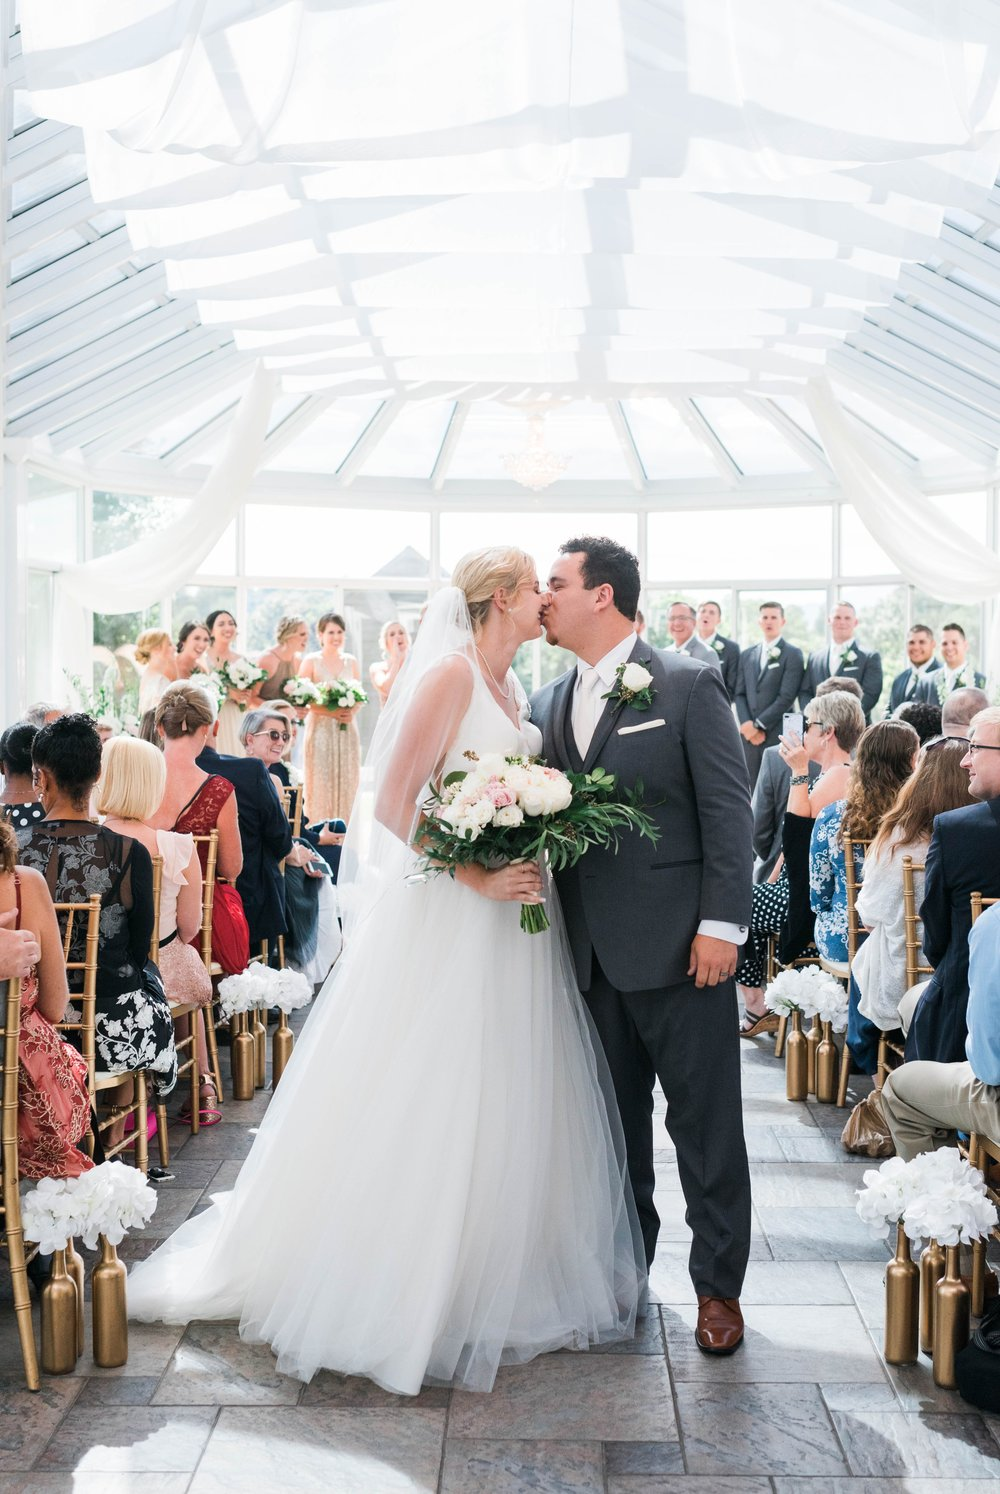 westmanorestate_entwinedevents_lynchburgweddingphotographer_Virginiaweddingphotographer_kateyam 37.jpg